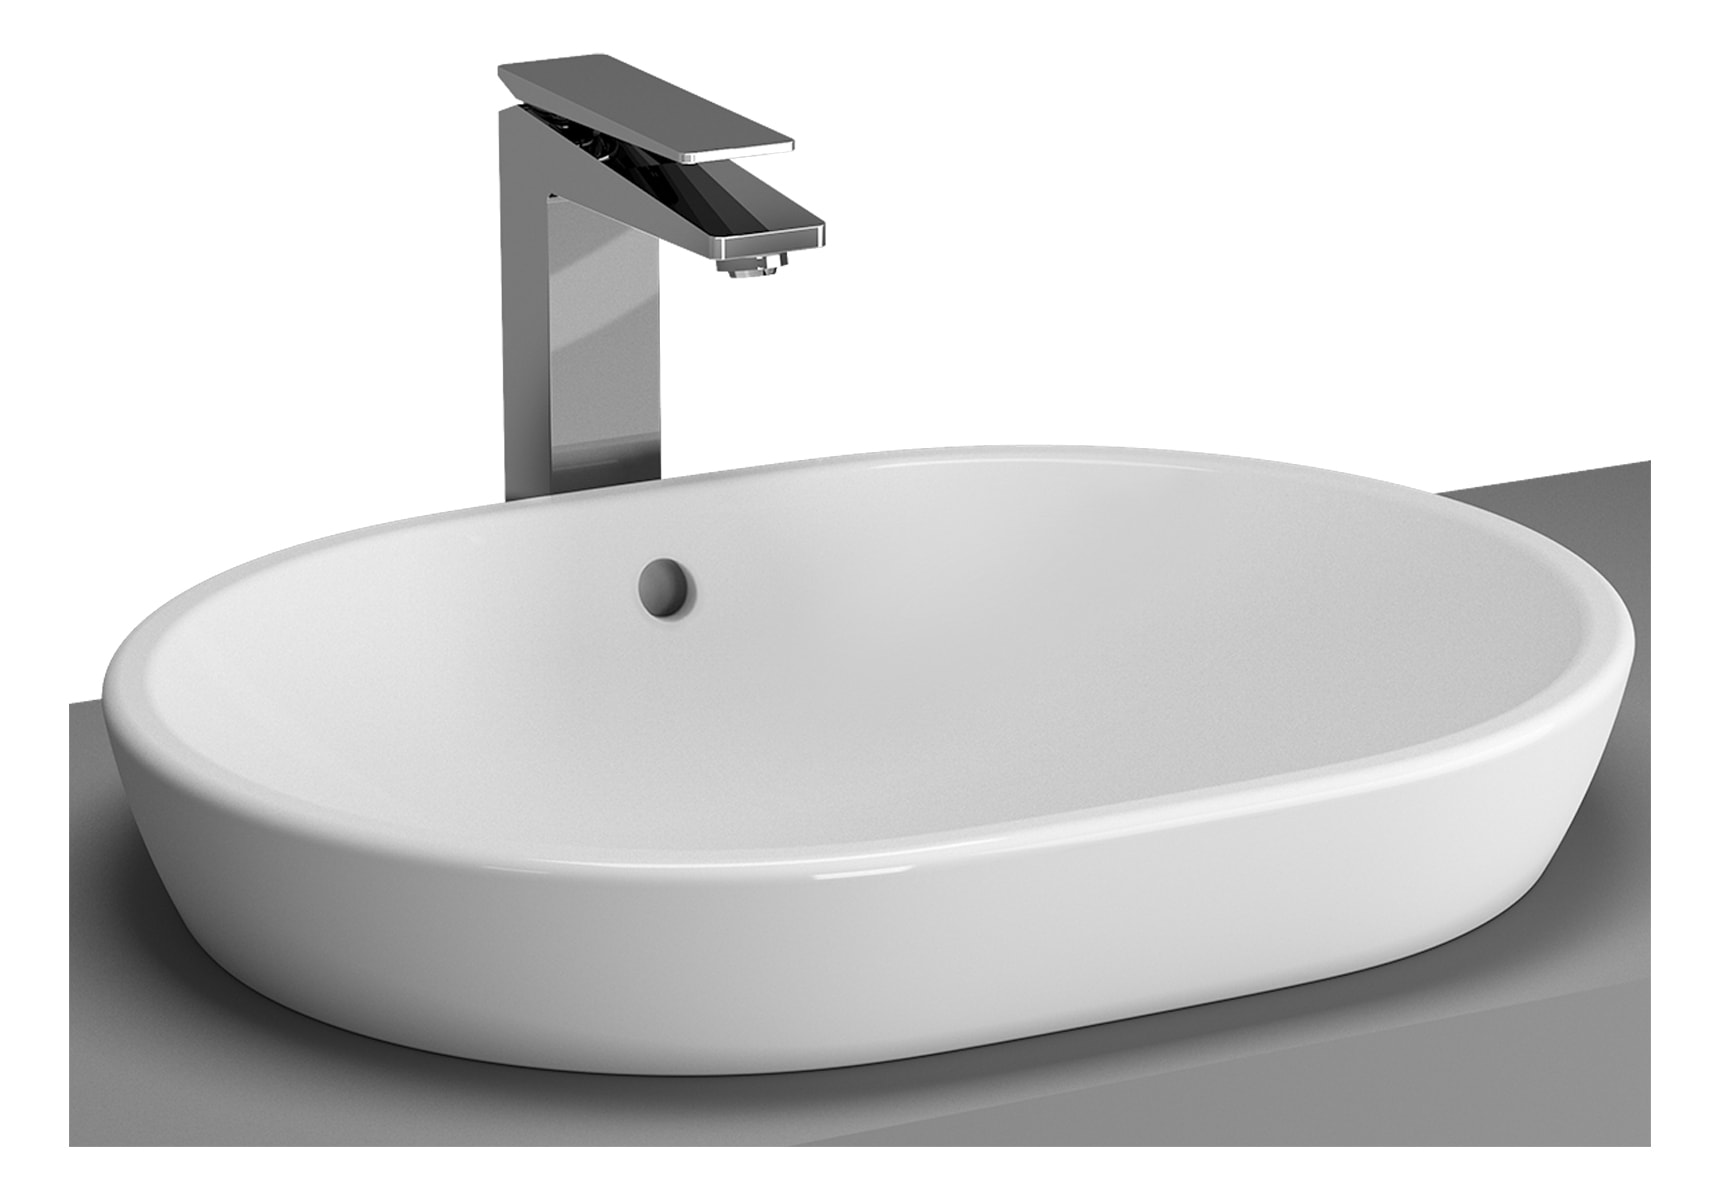 Metropole Countertop Round Bowl, 60cm, without Tap Hole, with Overflow Hole